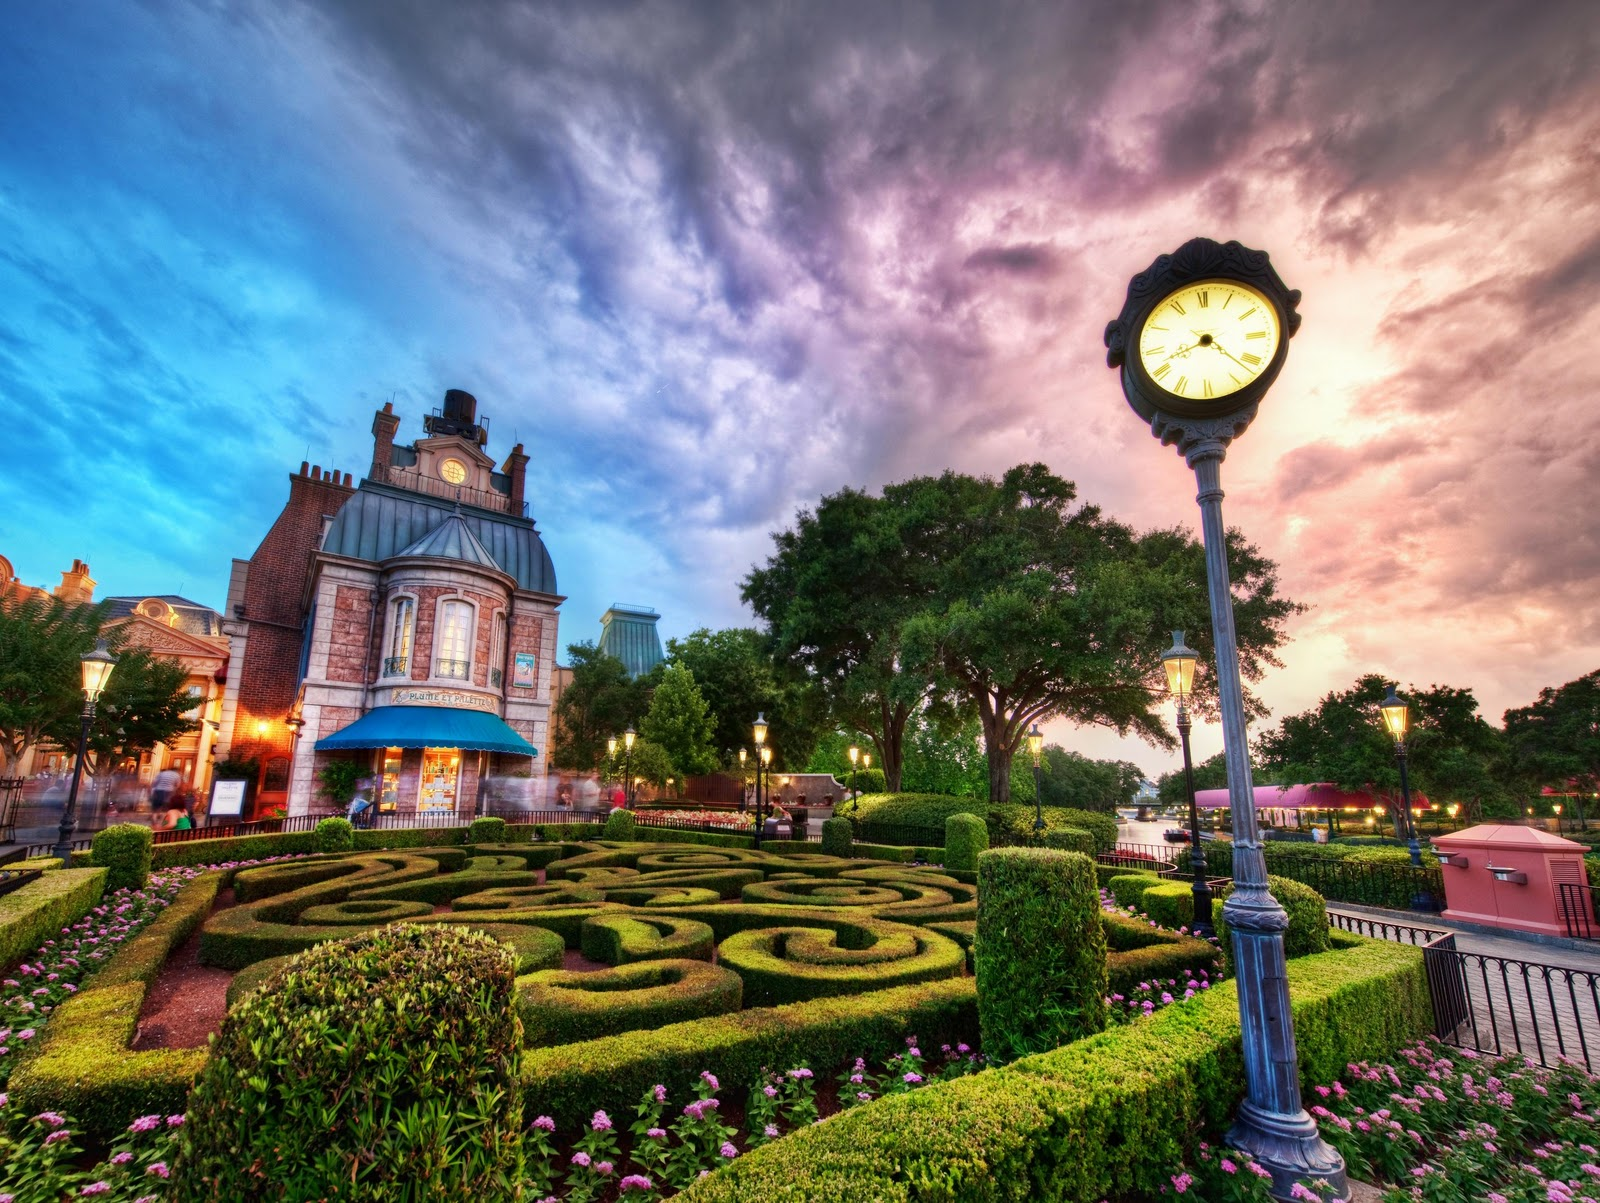 The walt disney world picture of the day jardin fran ais for Jardin francais